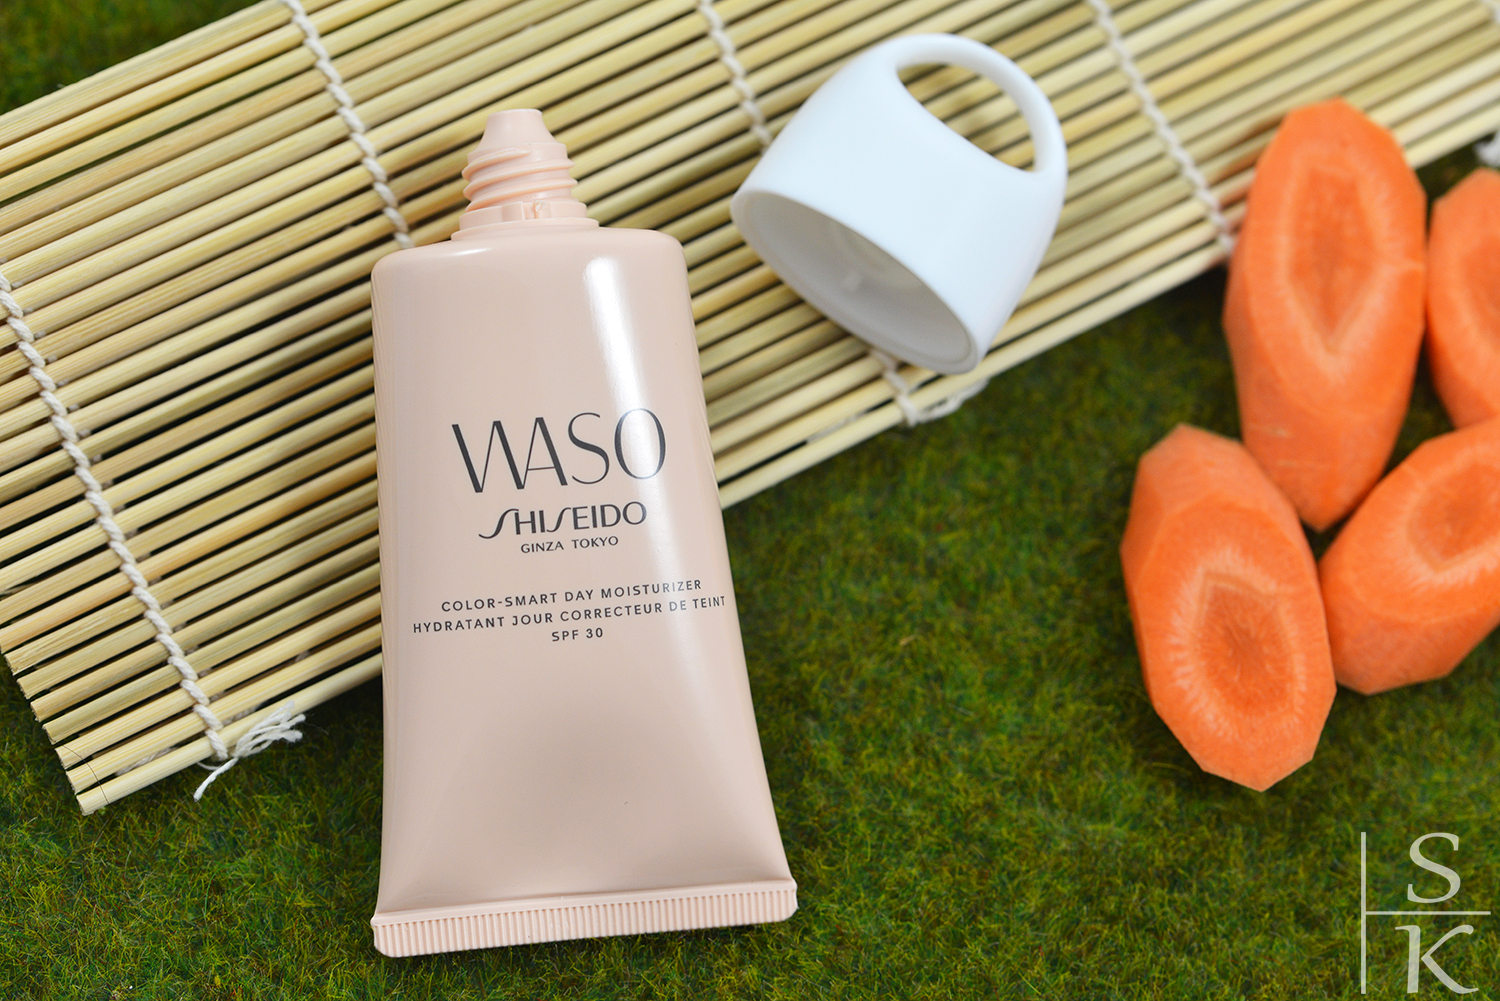 Shiseido-Waso-Color-smart-Day-Moisturizer-SPF30-Review-Saskia-Katharina-Most-Horizont-Blog-03